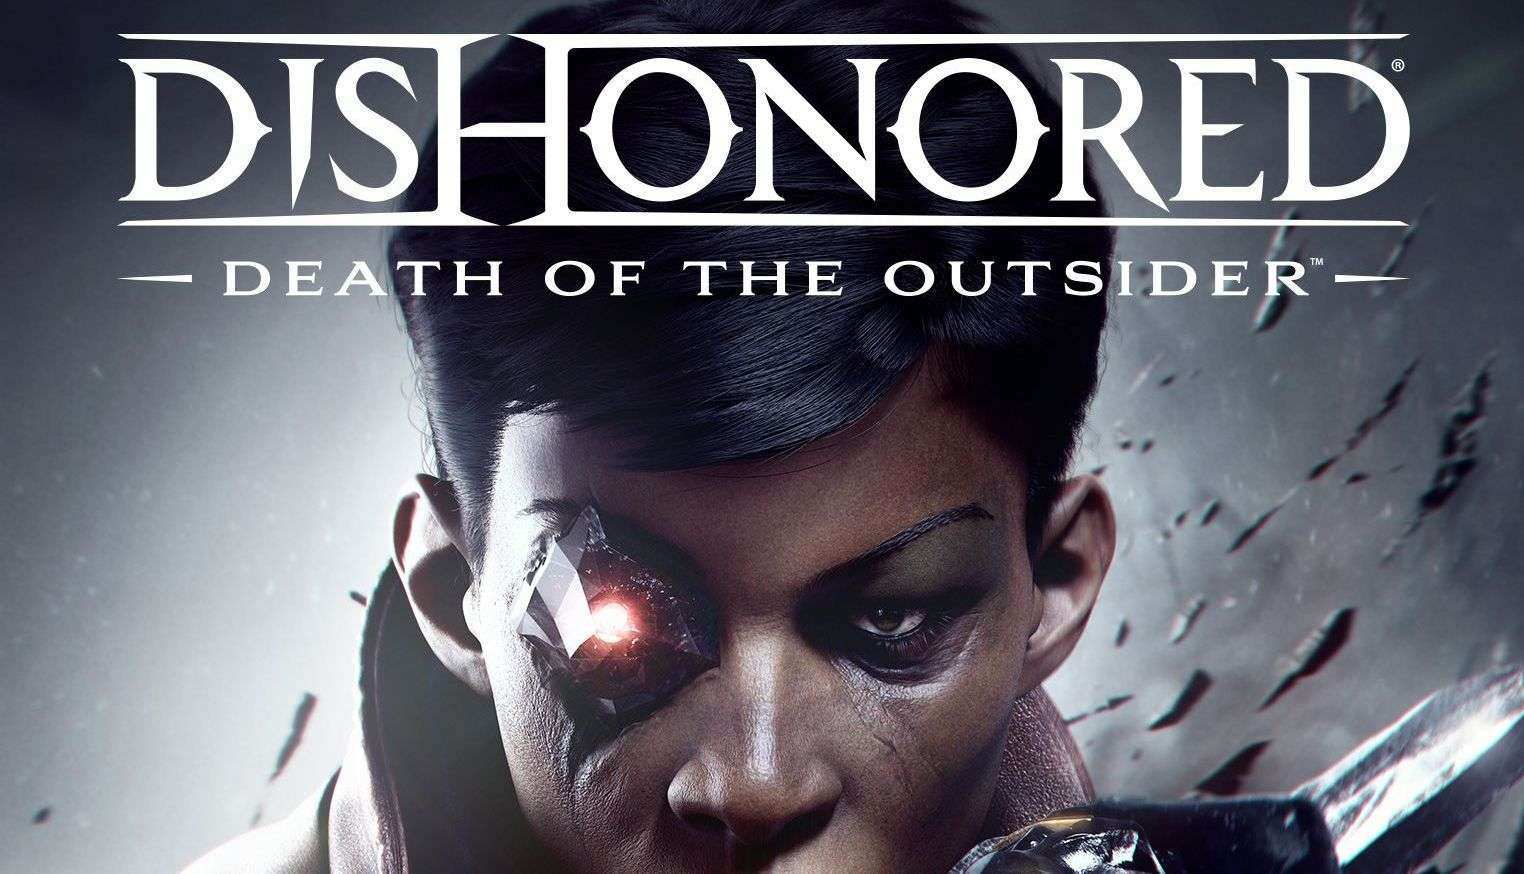 Dishonored Death of the Outsider günstig bei CDKeys.com!